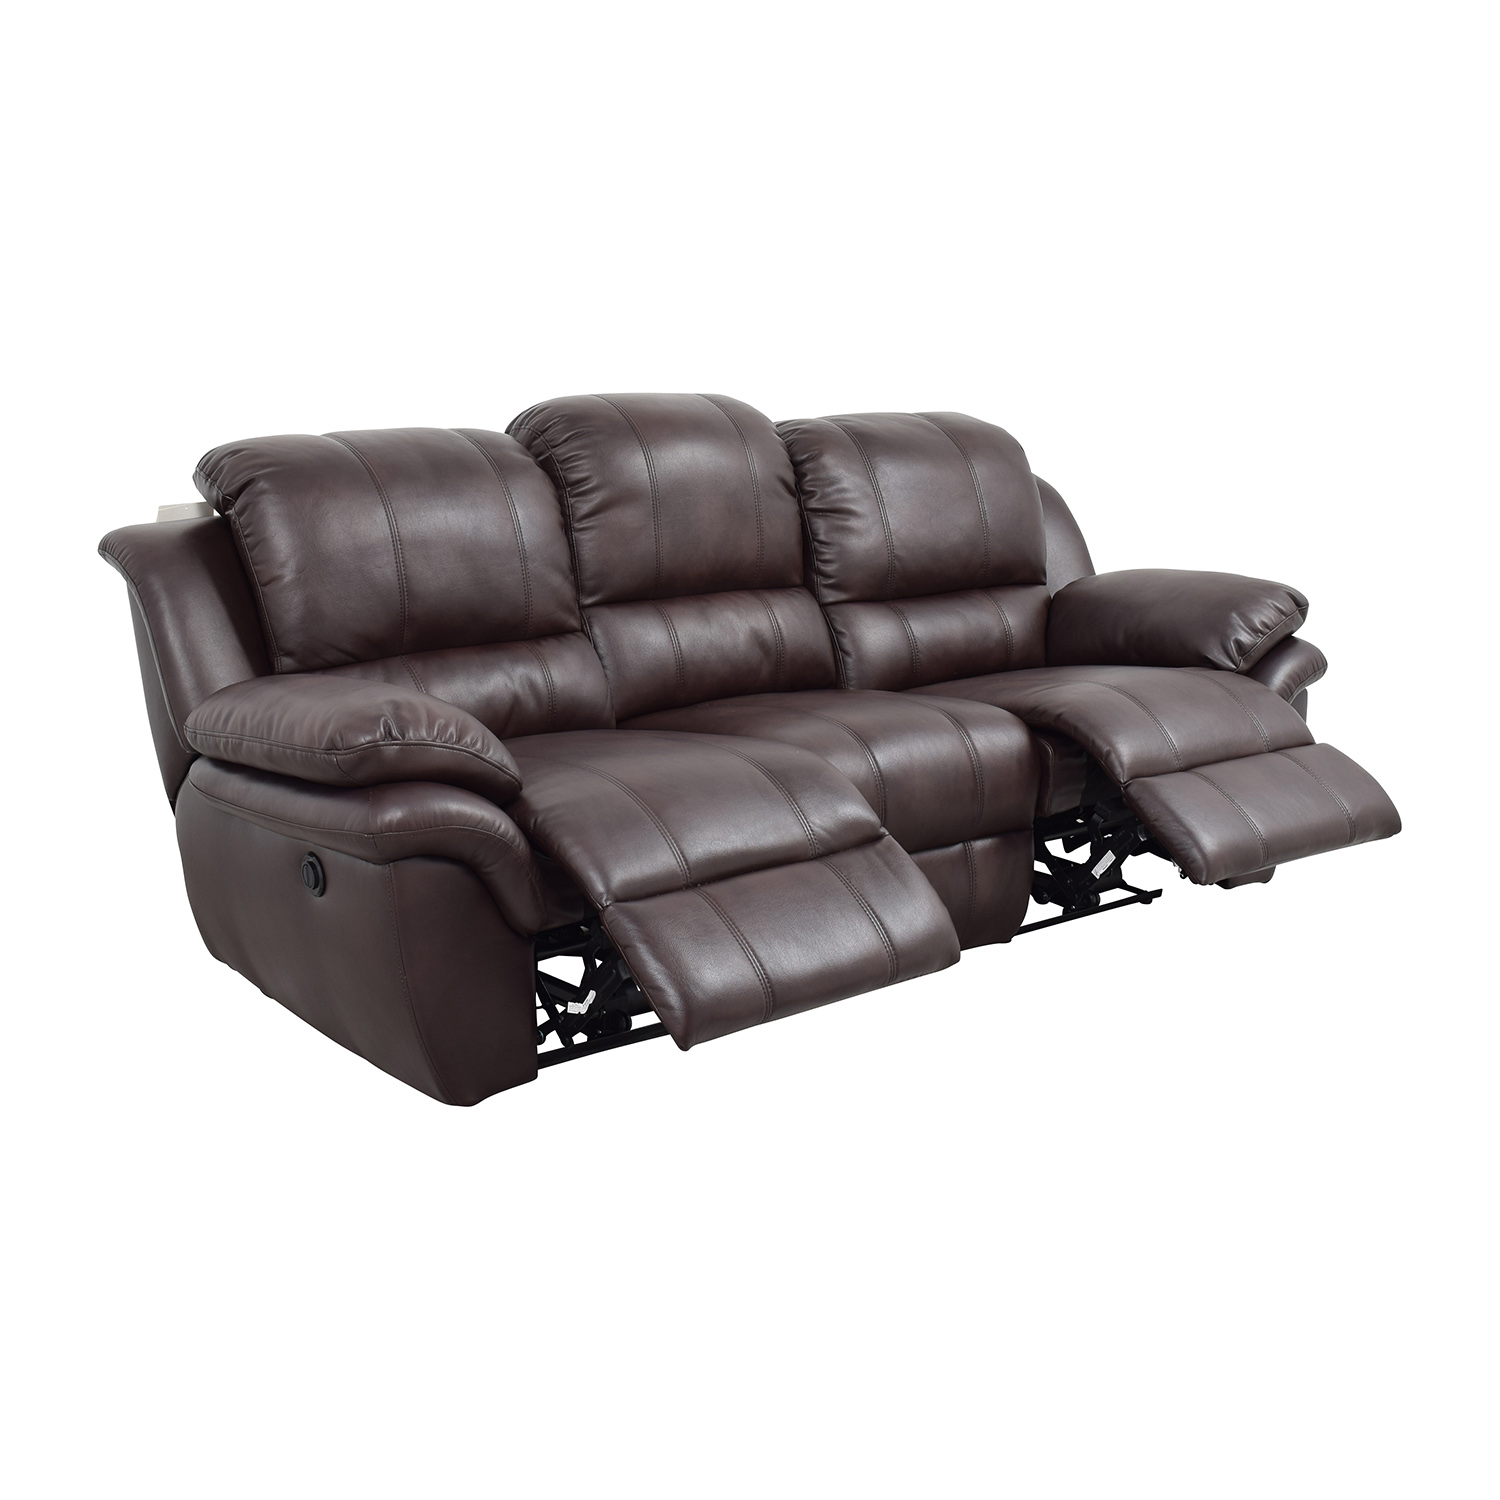 New Classic Home Furnishing New Classic Home Furnishing Leather Reclining Brown Couch coupon